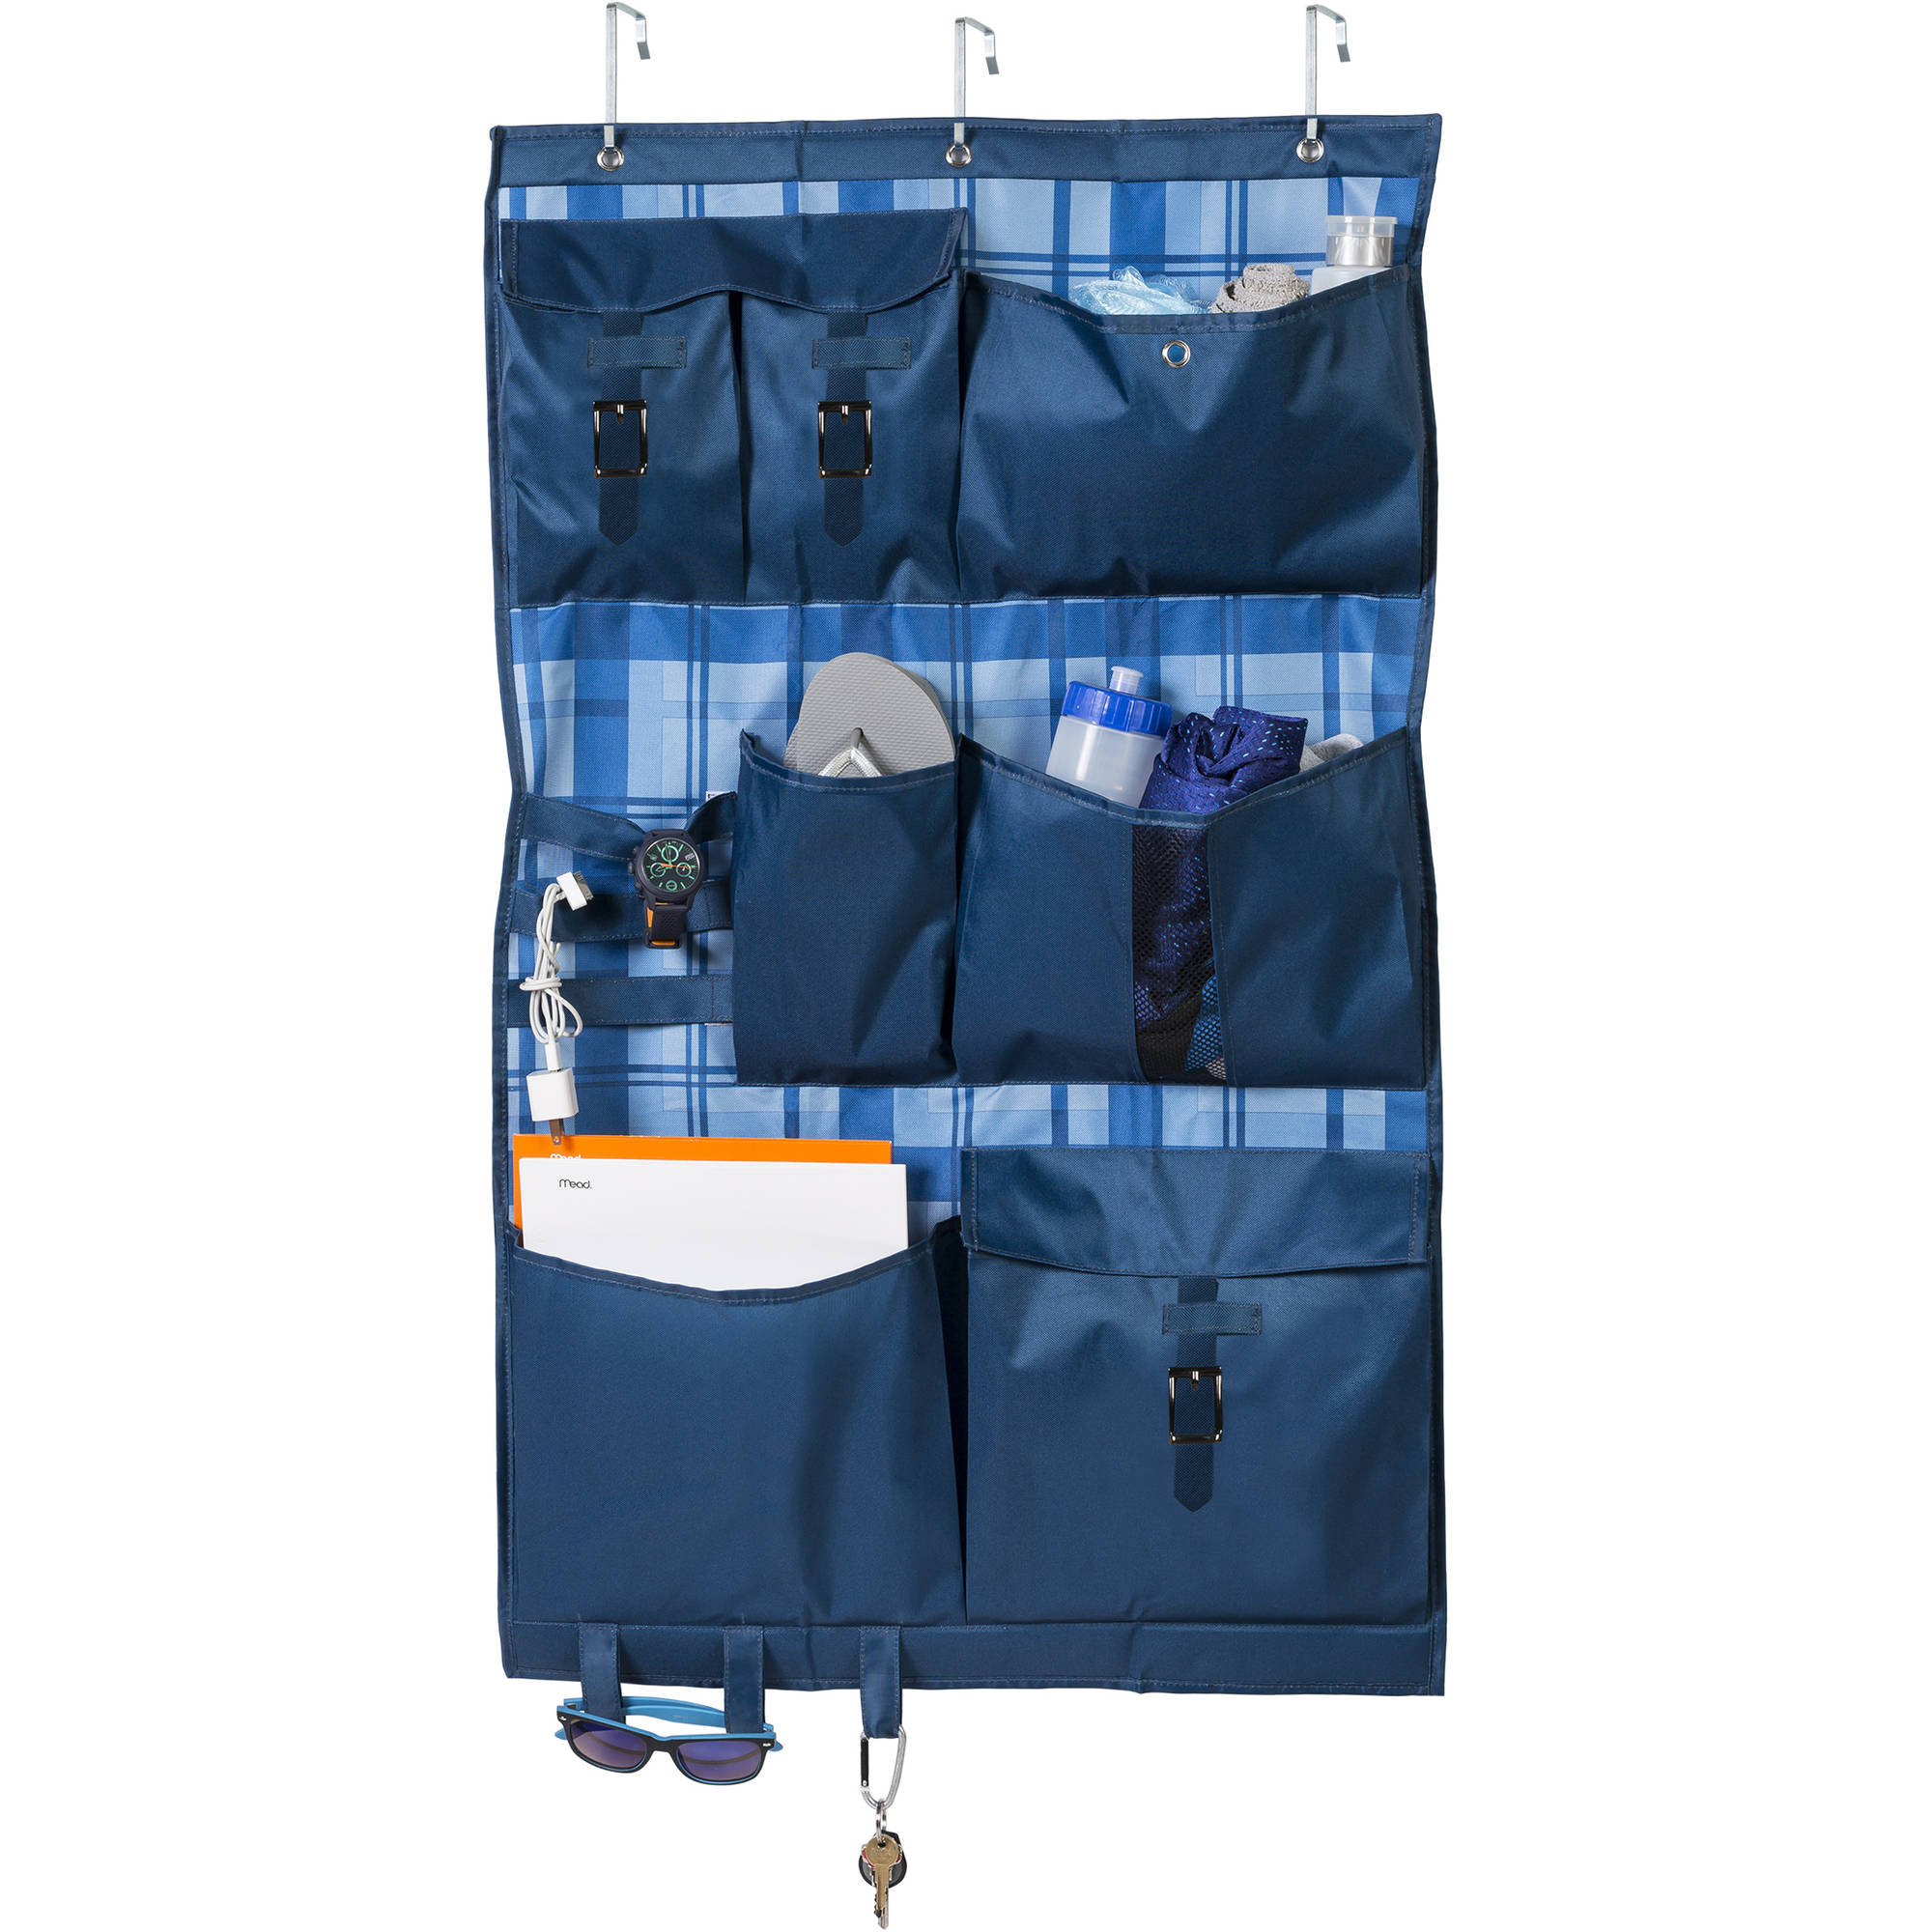 Honey Can Do Over The Door Pocket Organizer, Multiple Colors